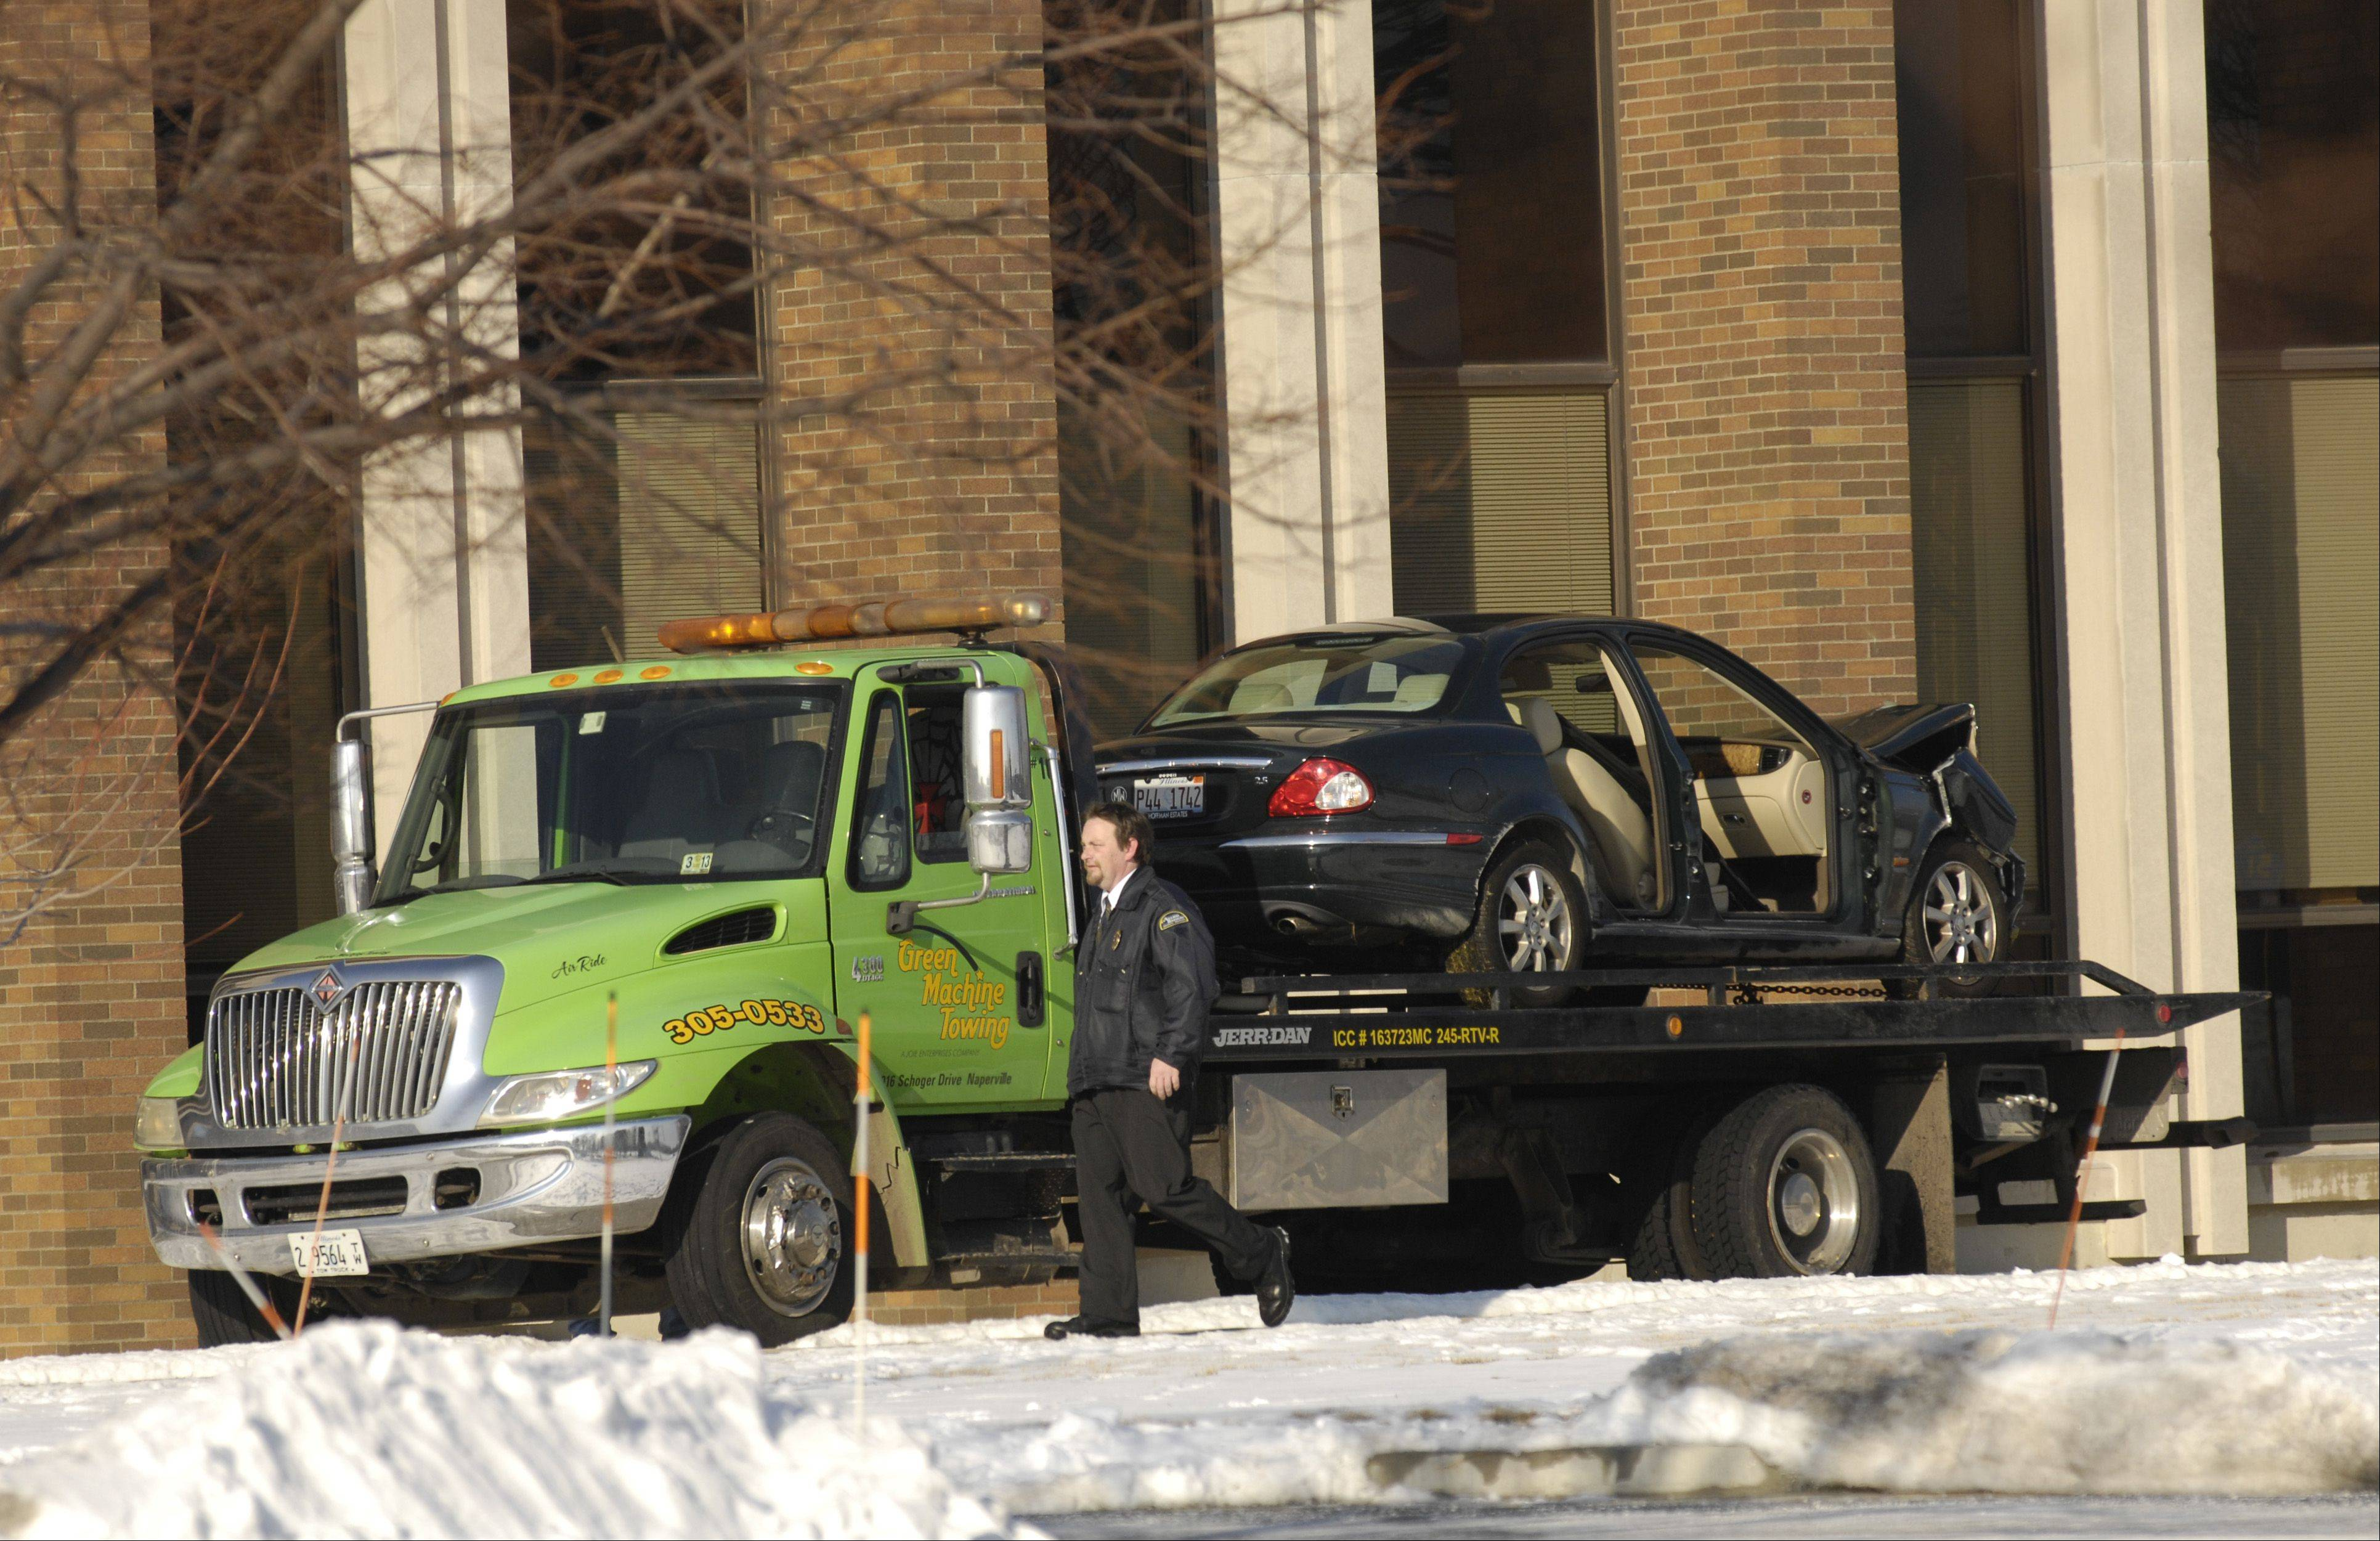 A car is removed from the scene after striking a building that houses DePaul University's Naperville campus. No one was seriously injured.